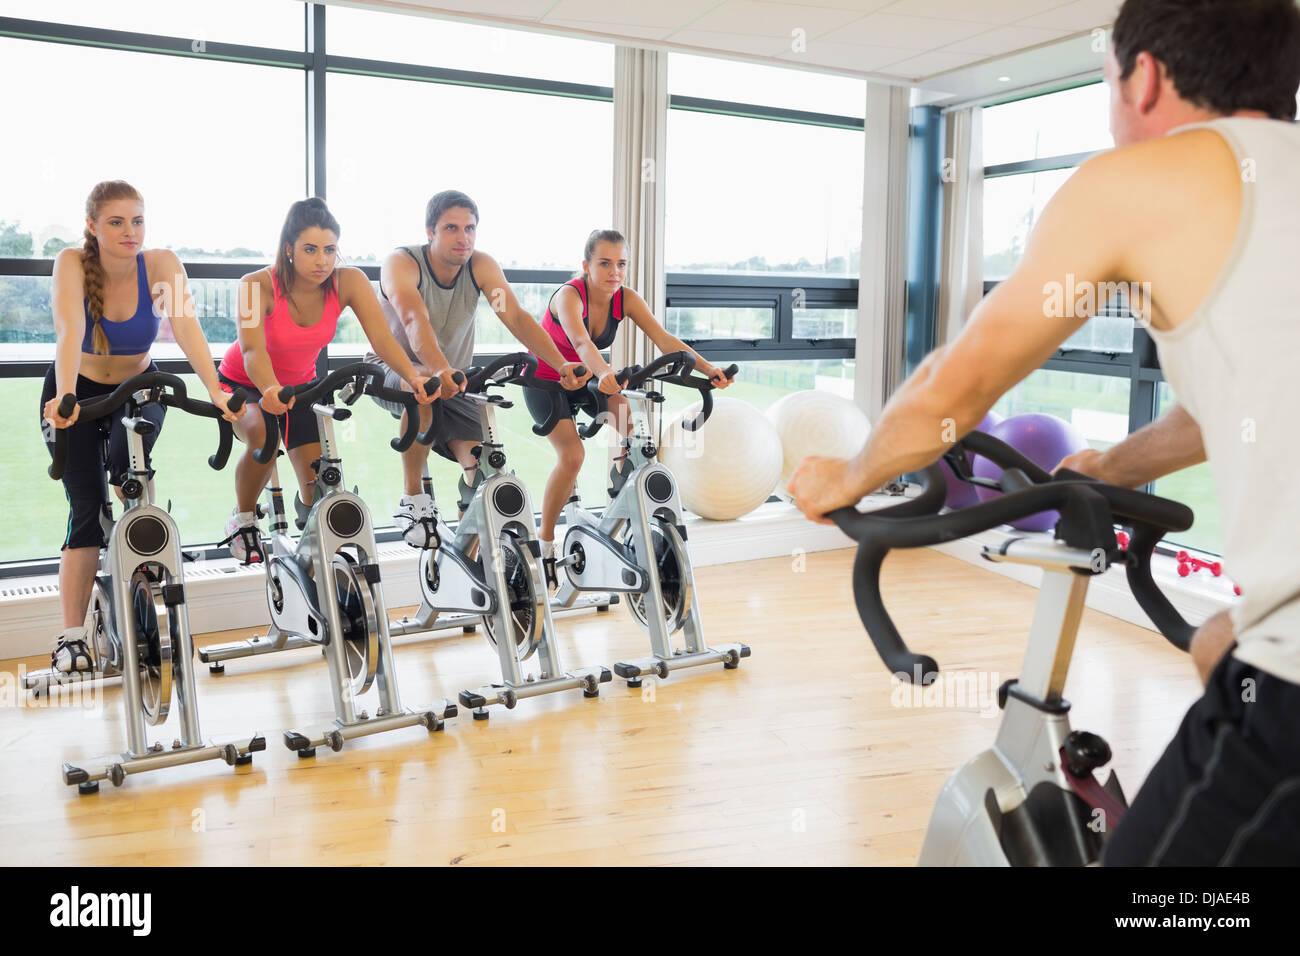 Man teaching spinning class to four people - Stock Image